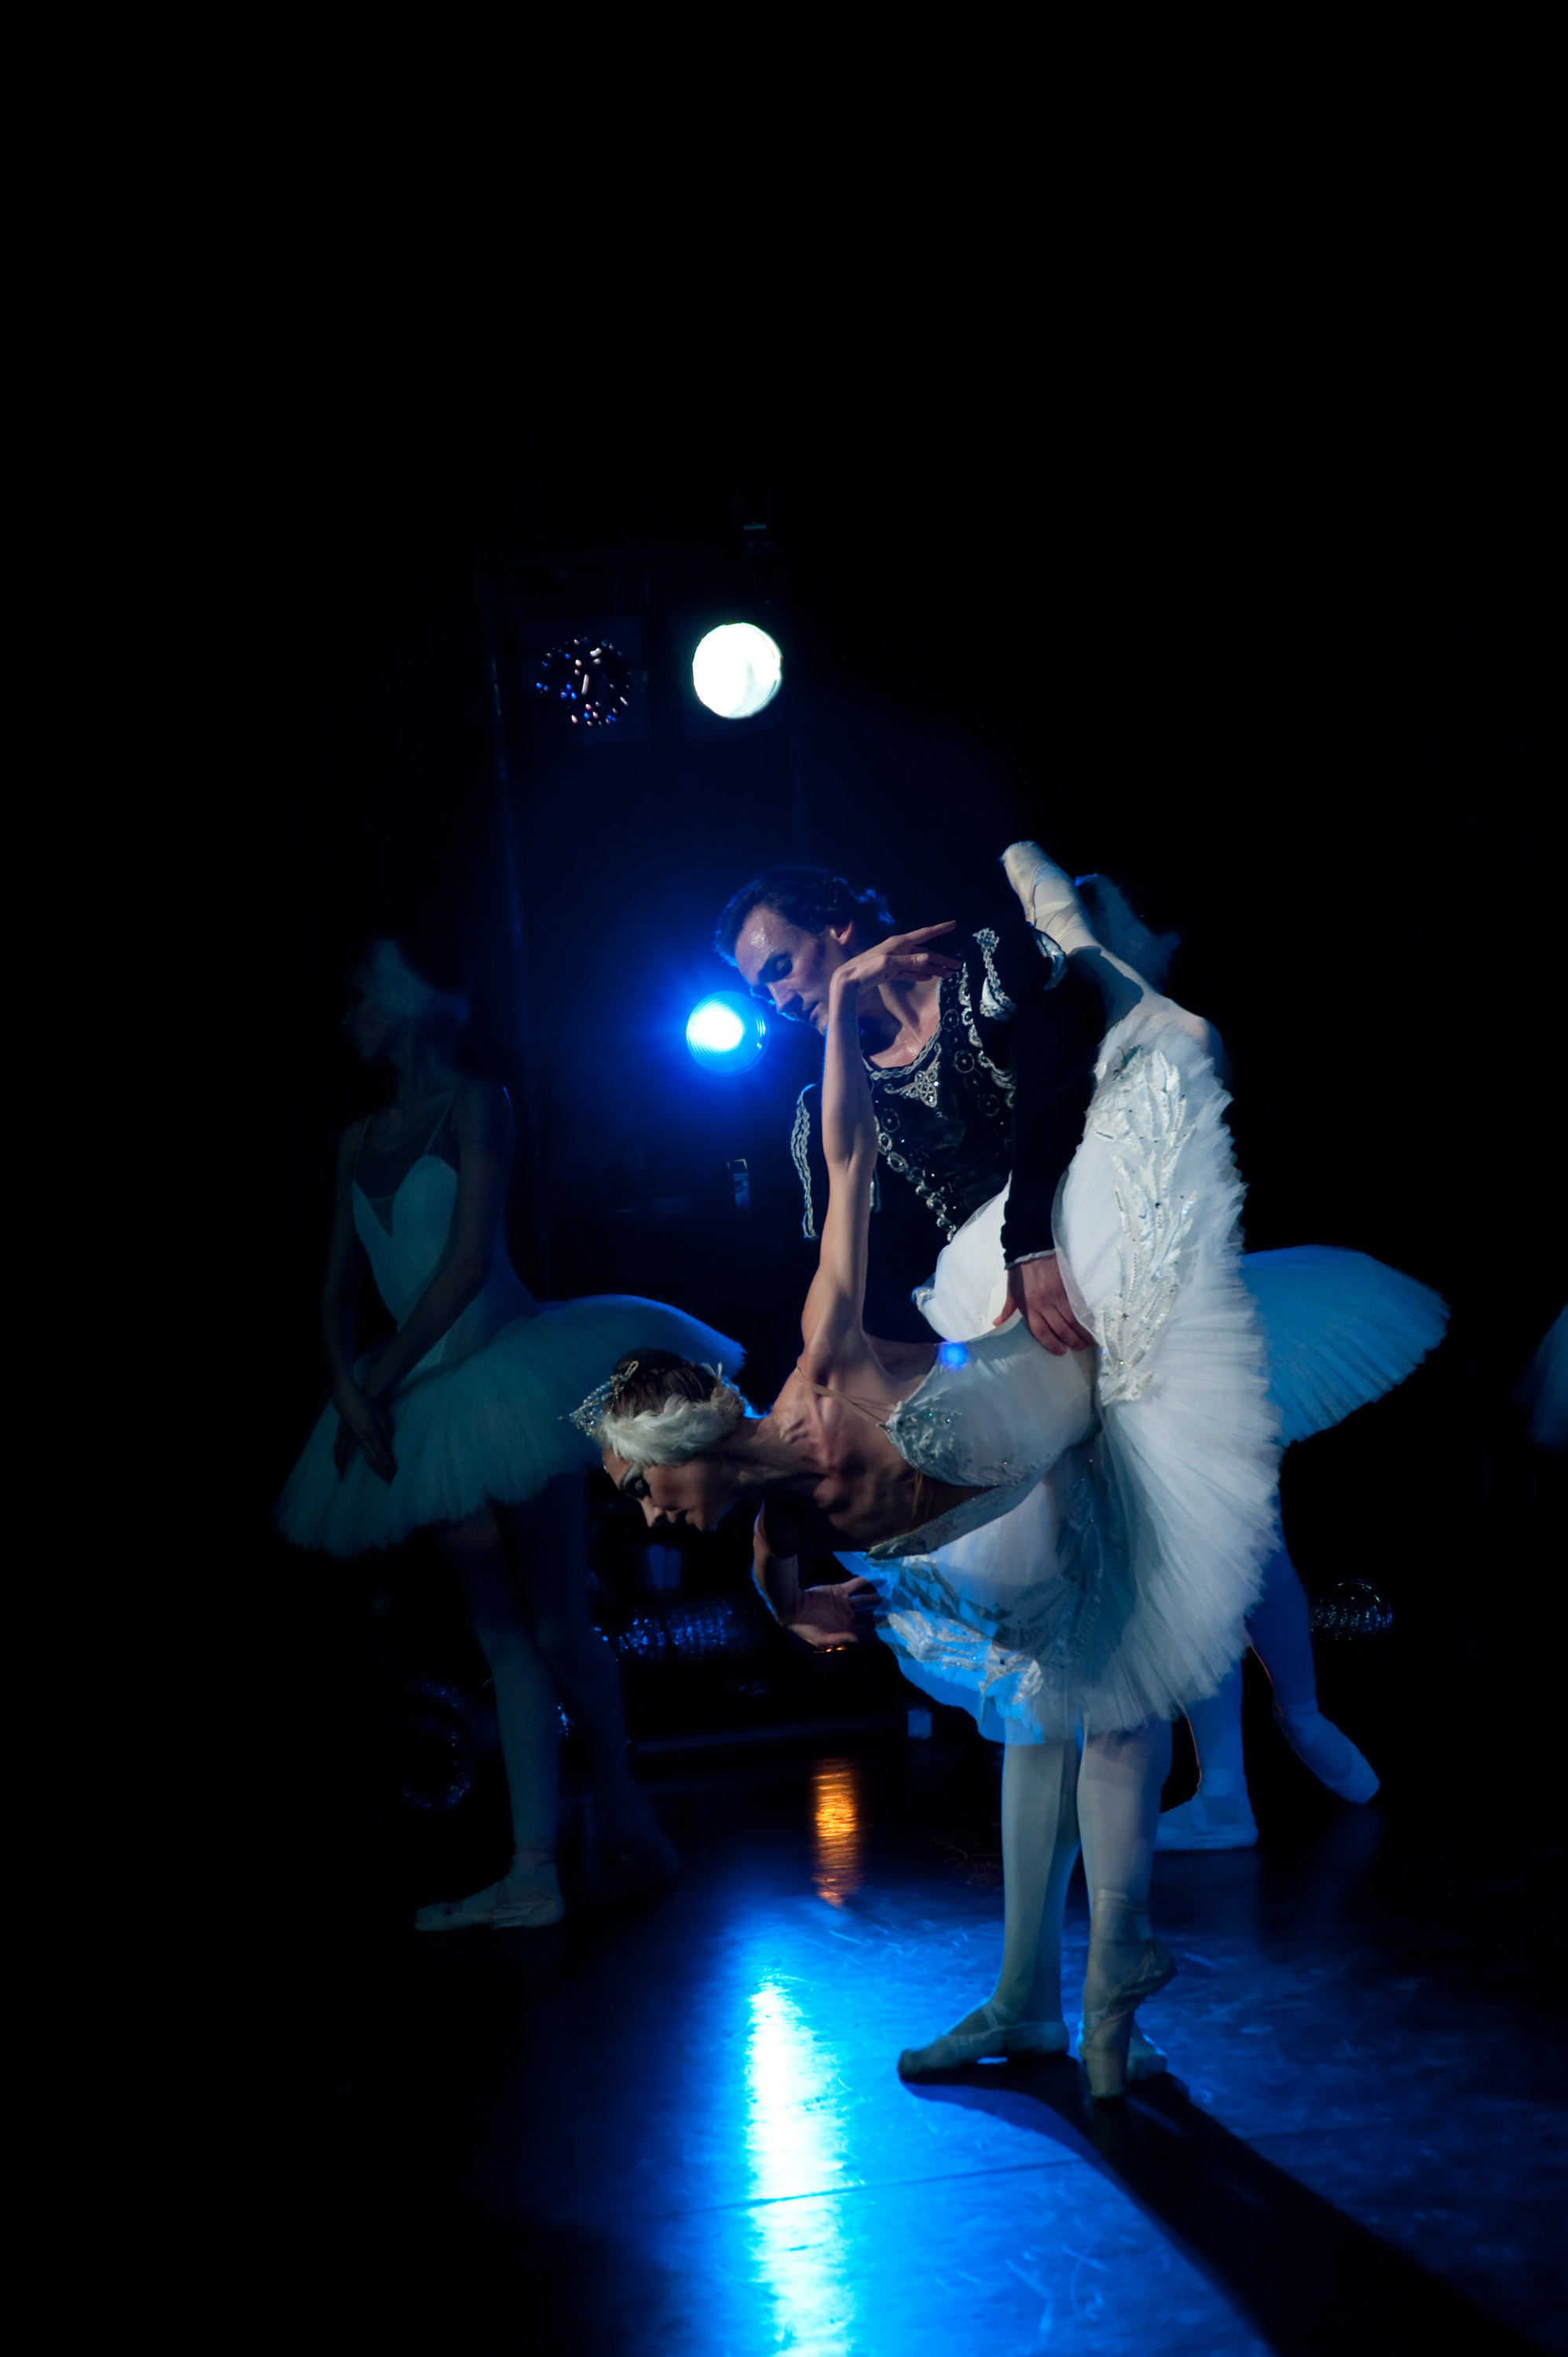 Natalya Romanova Odette. Vadim Lolenko Siegfried. Shot from the wings